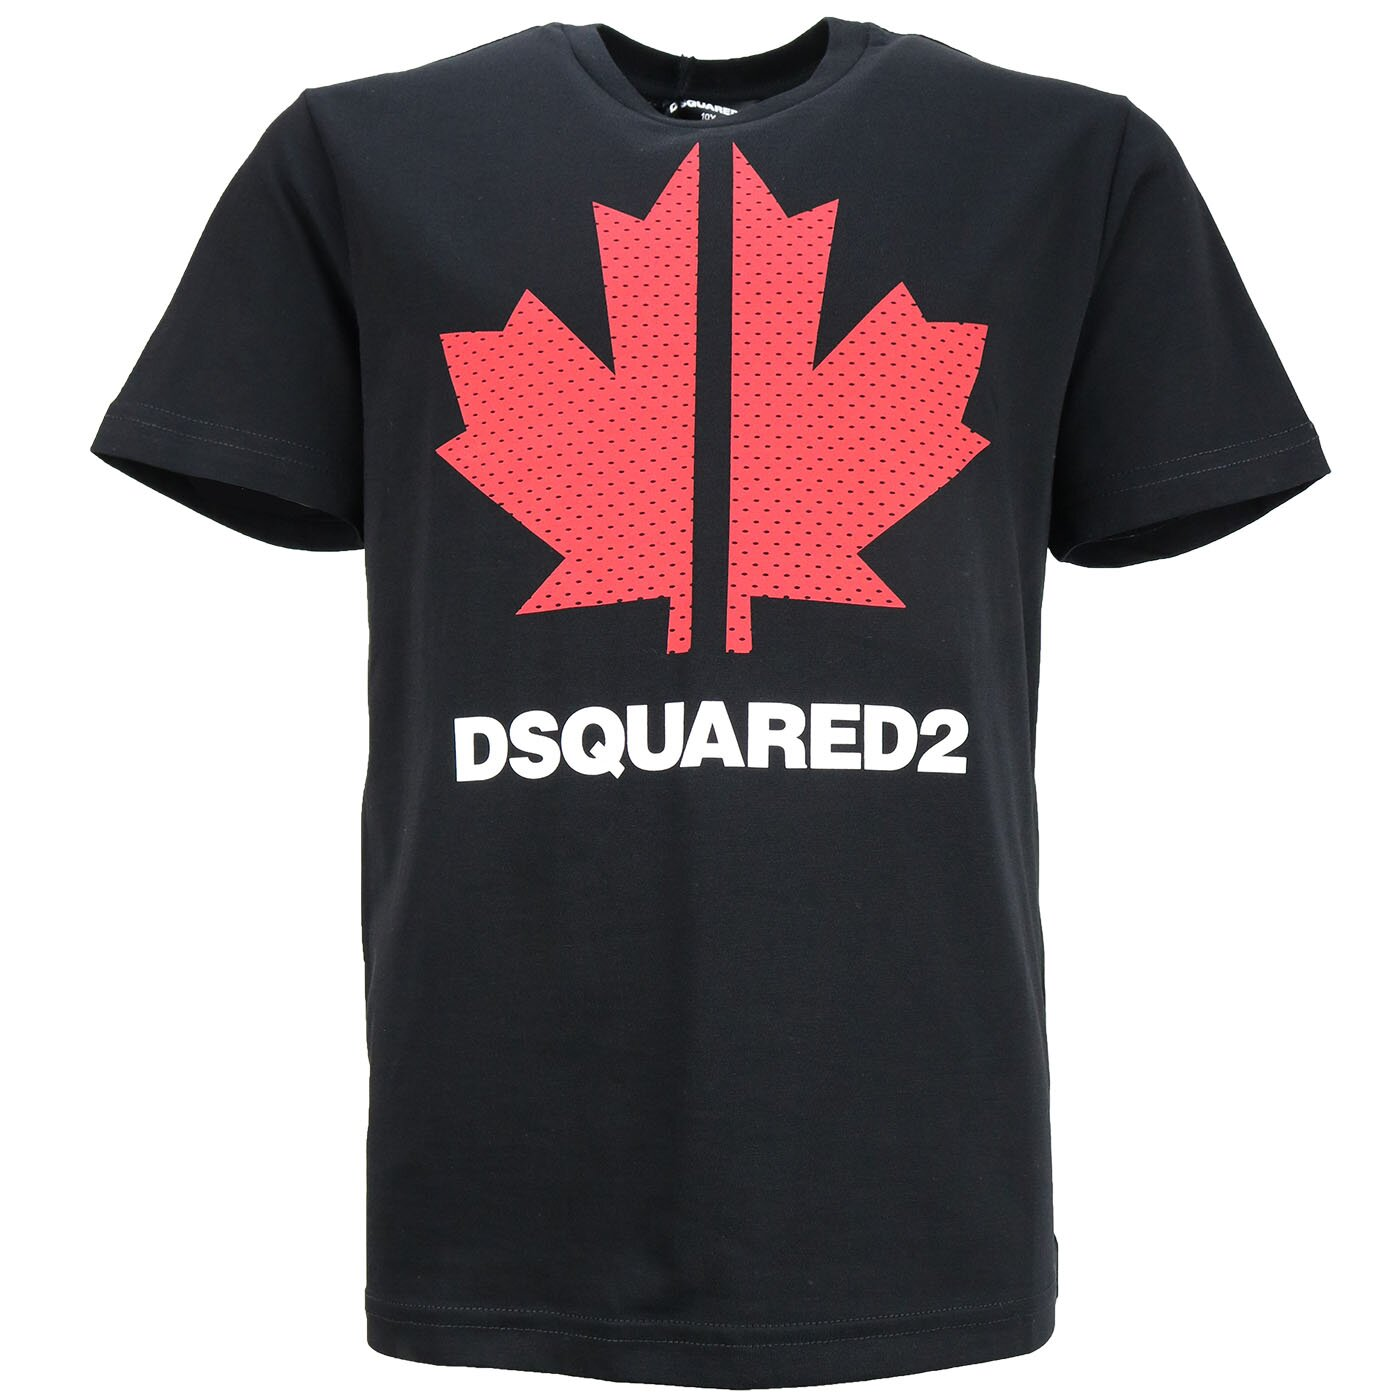 Dsquared2 Shirt Sport Edition Zwart Maple DQ0028 Relax Fit